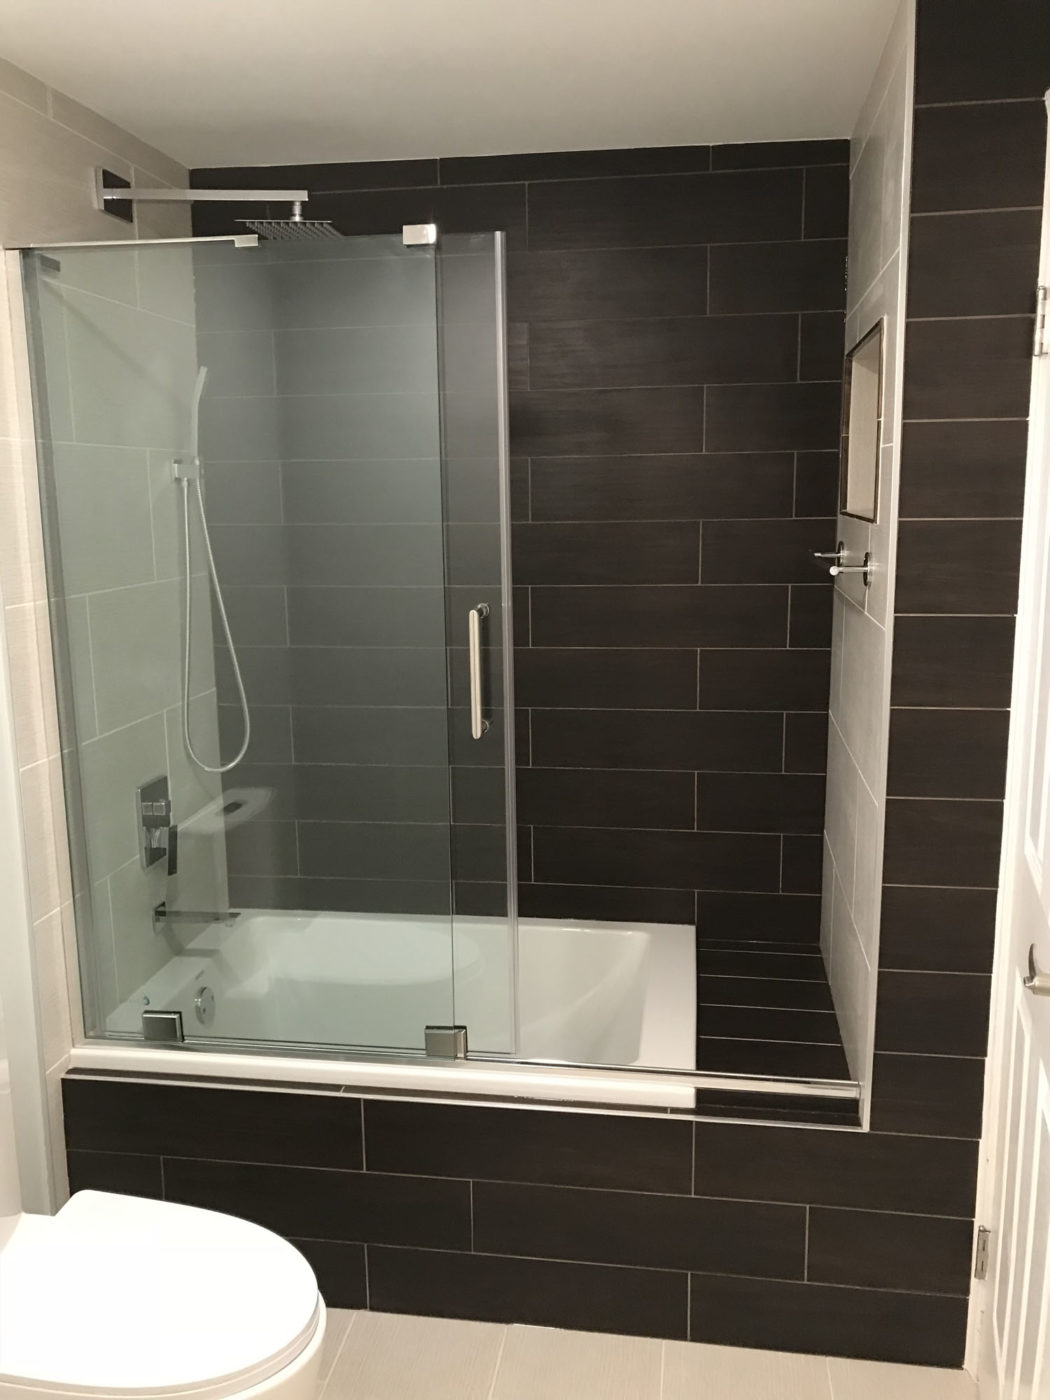 MasterBathroom remodeling in Schaumburg - new shower